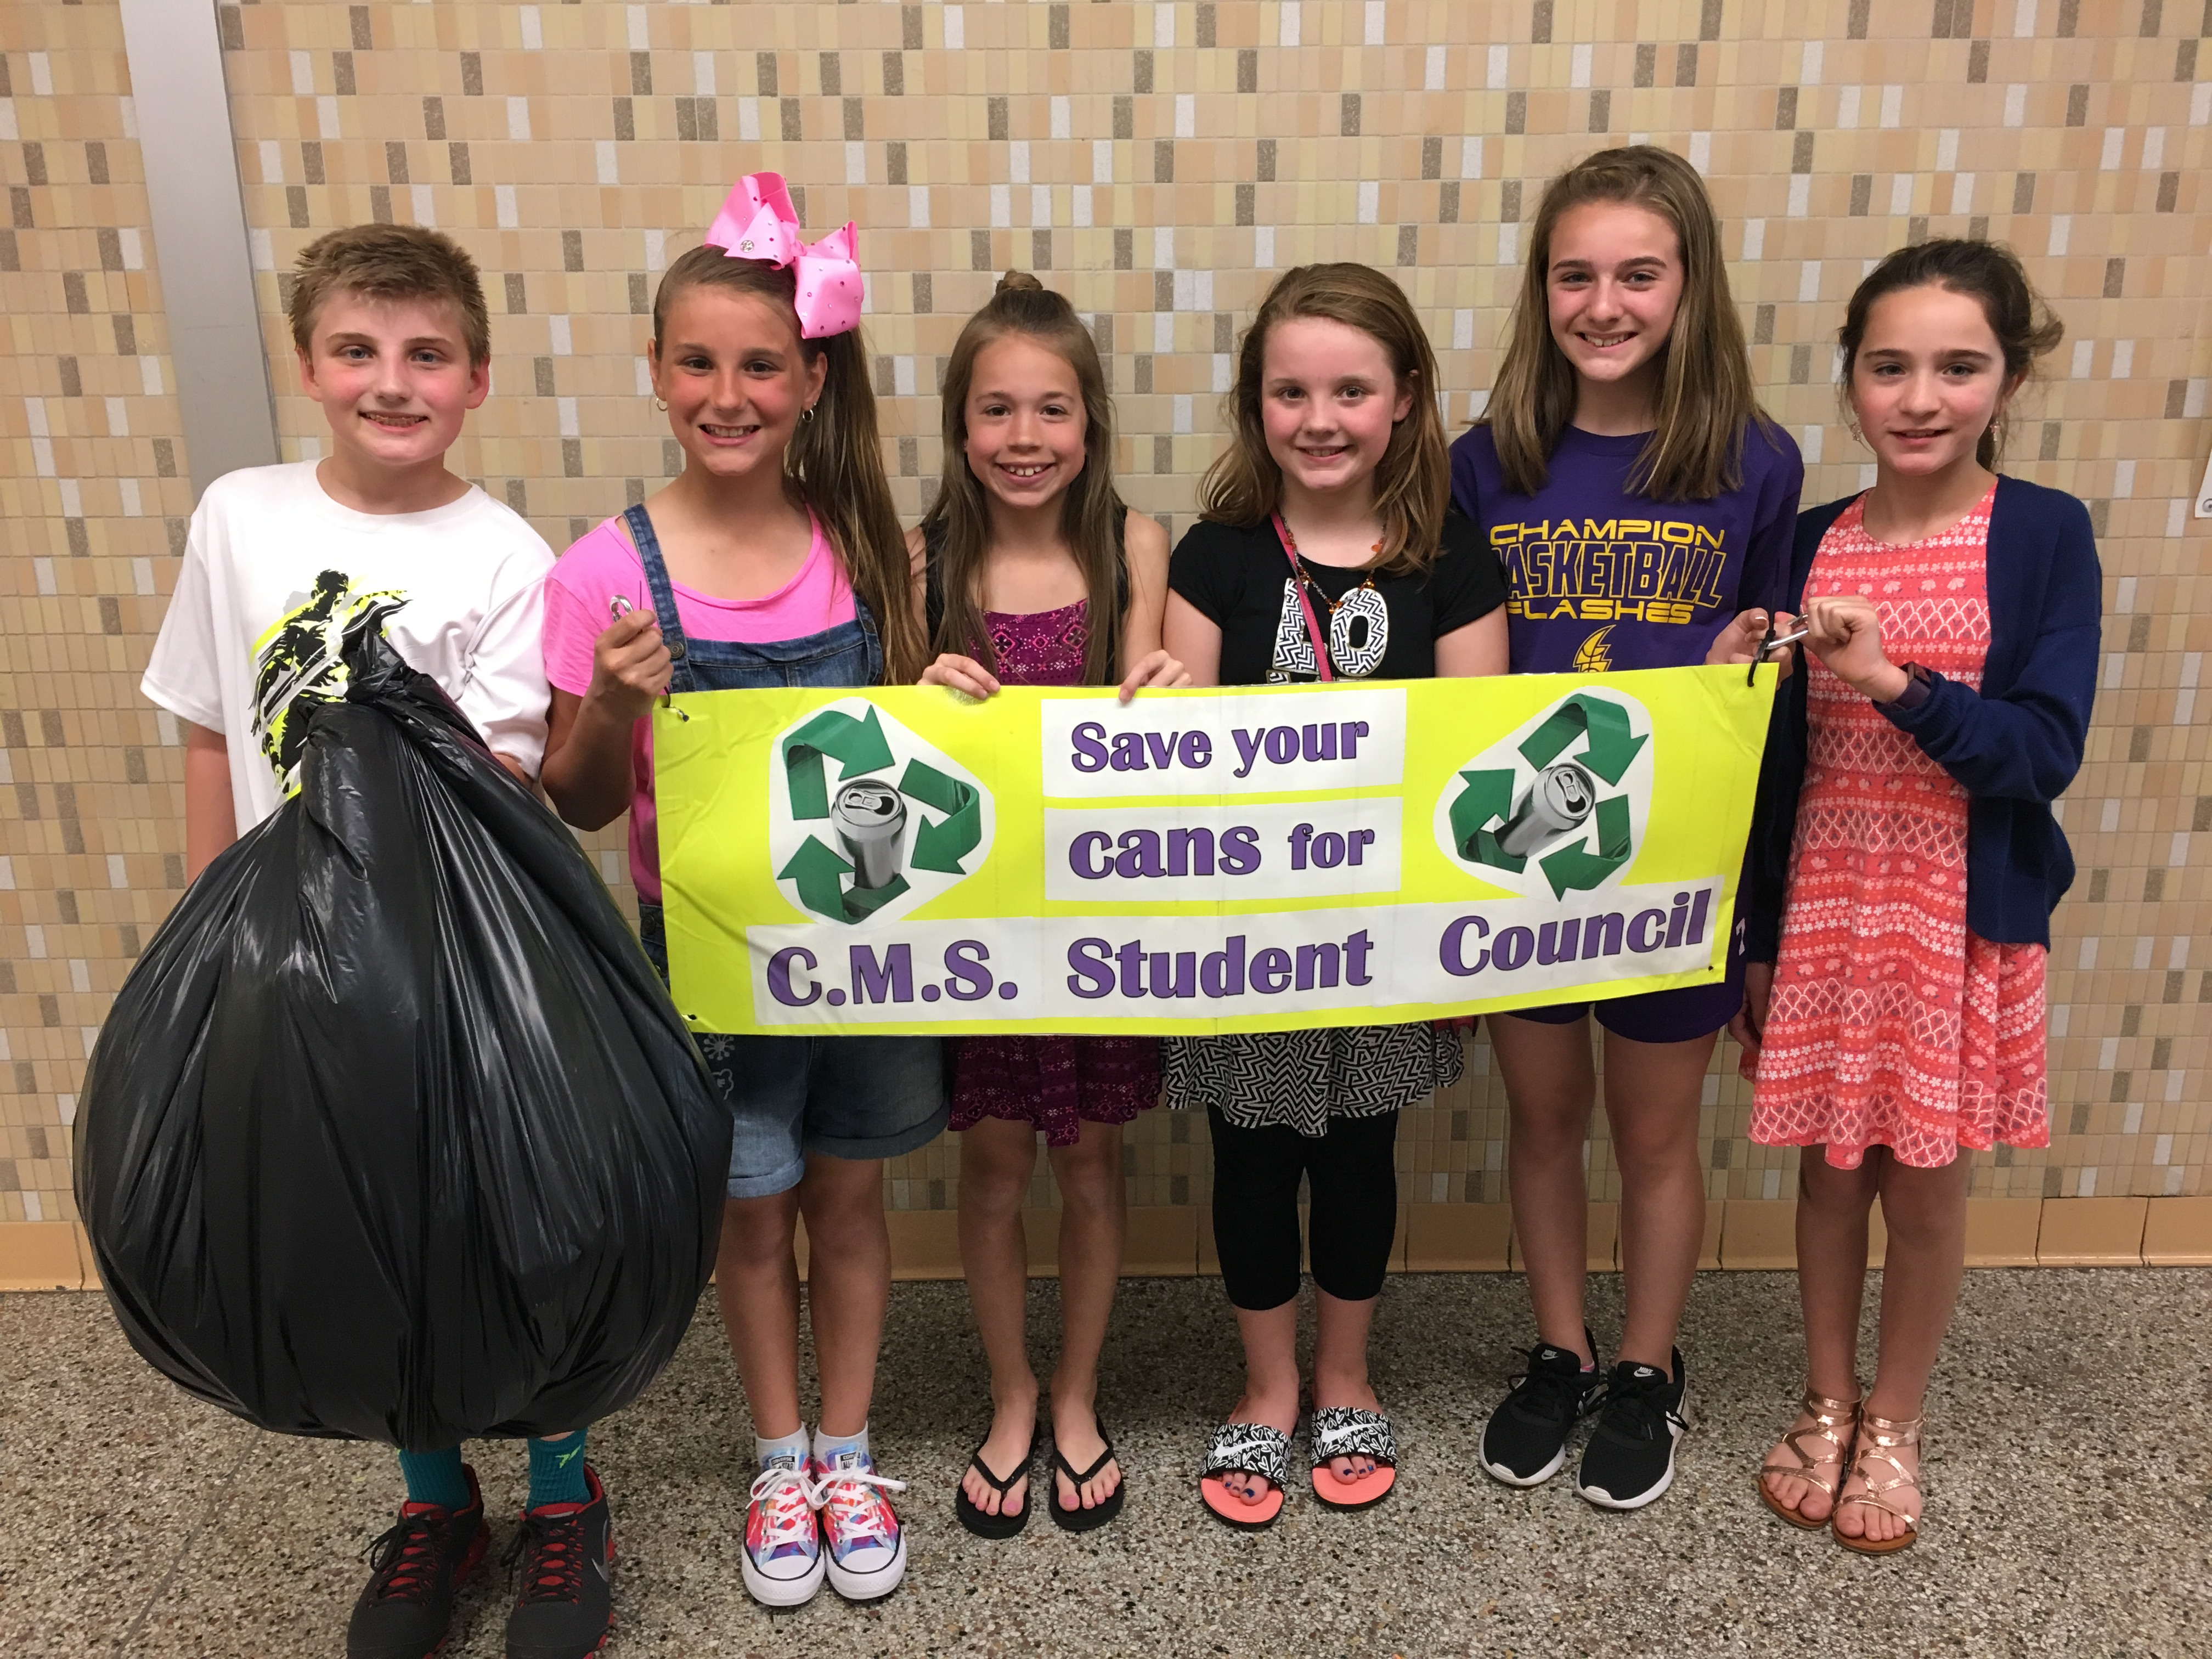 CMS Student Council Wins Recycling Drive